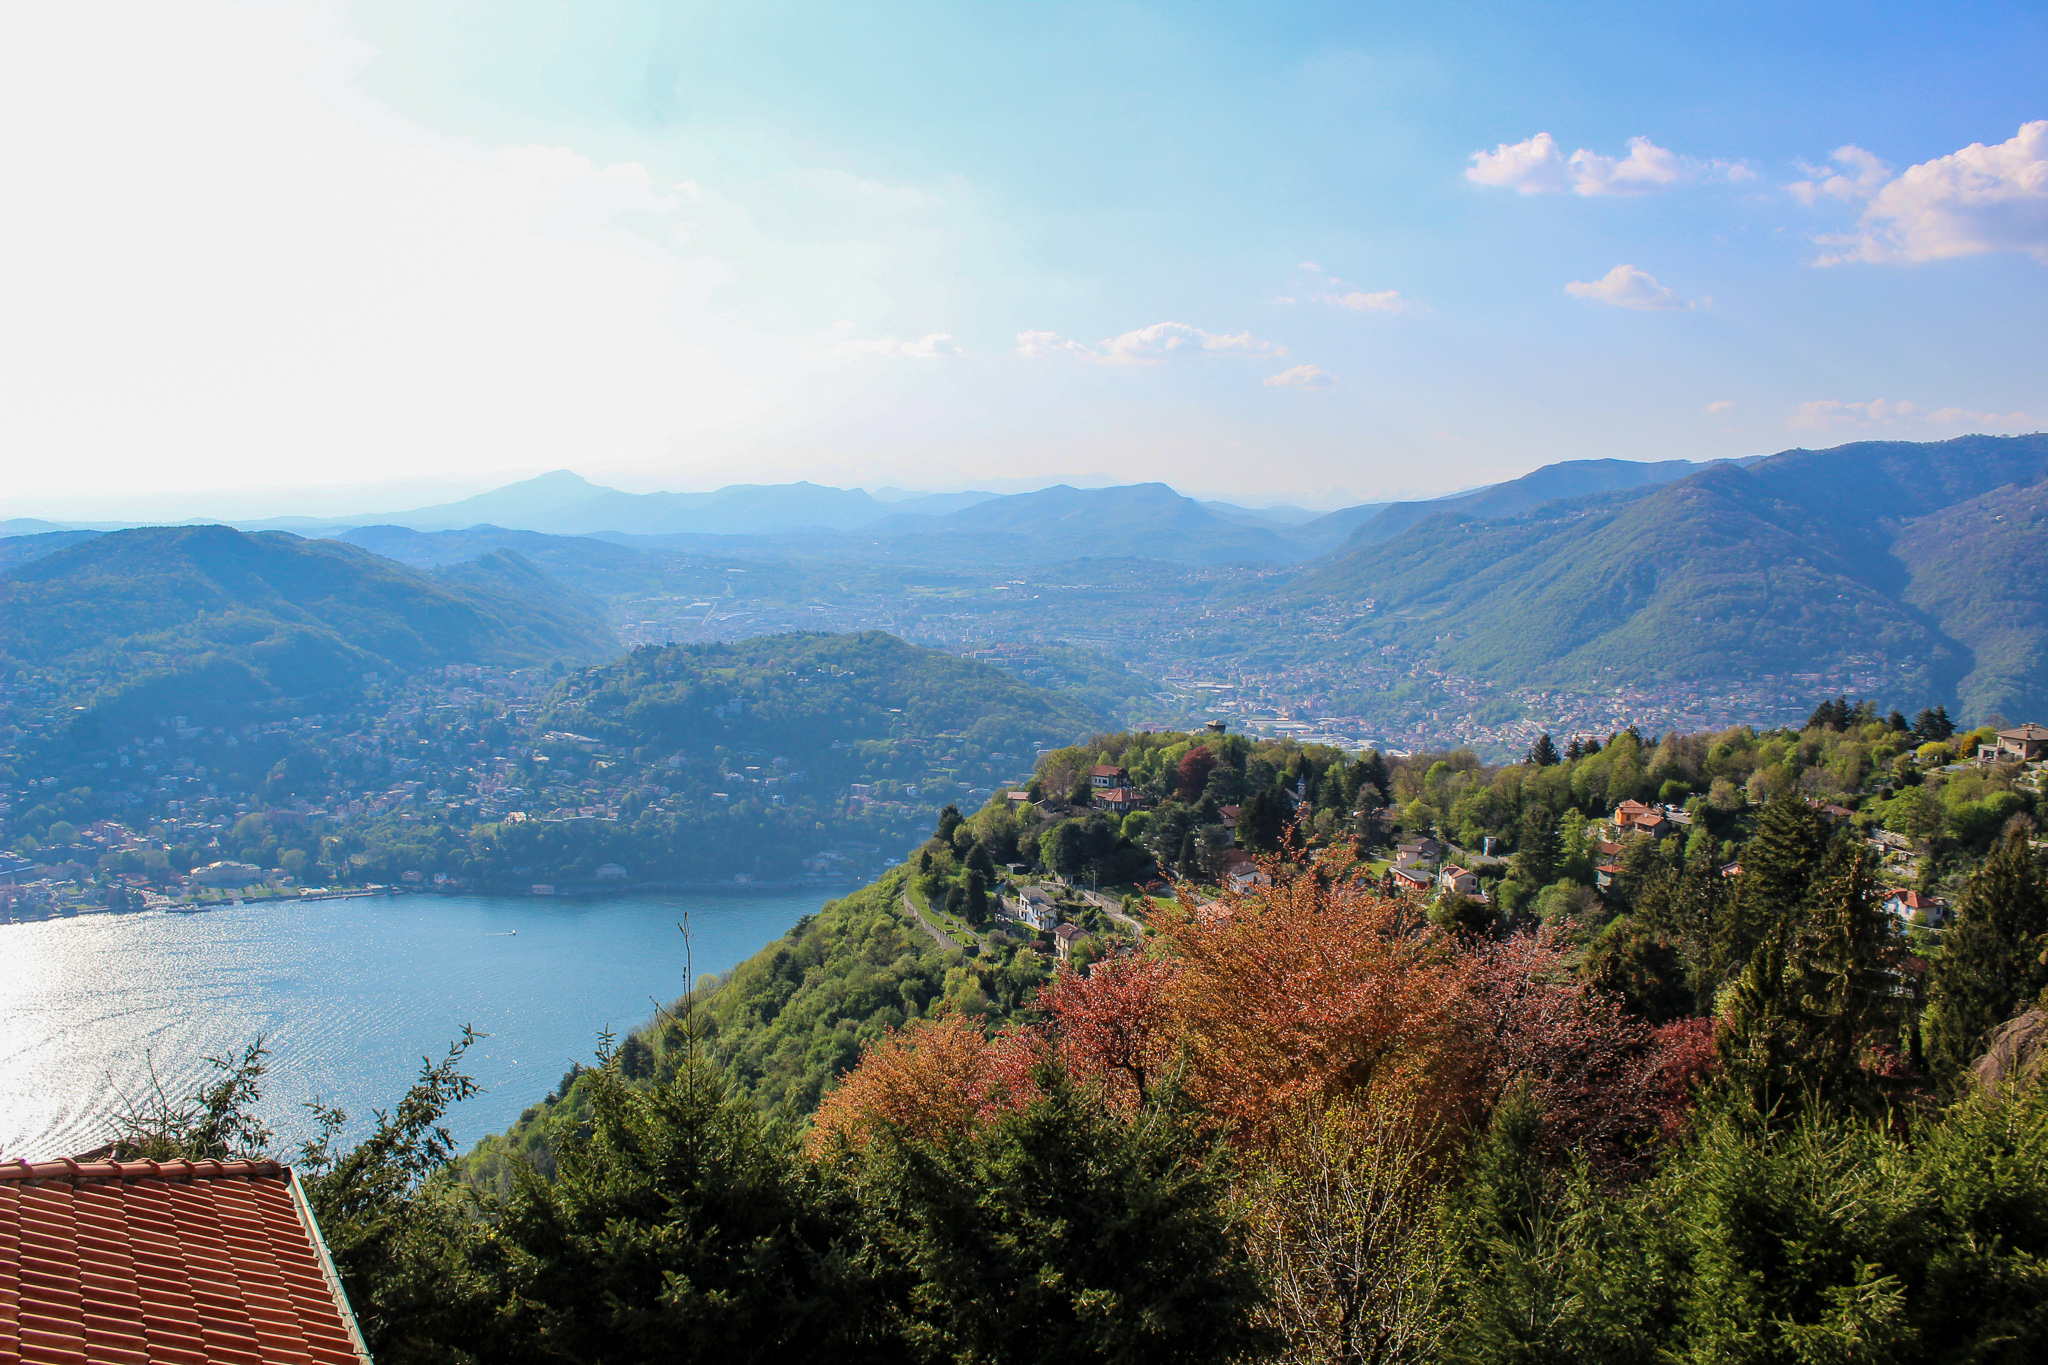 planning first trip to italy? don't miss the countryside